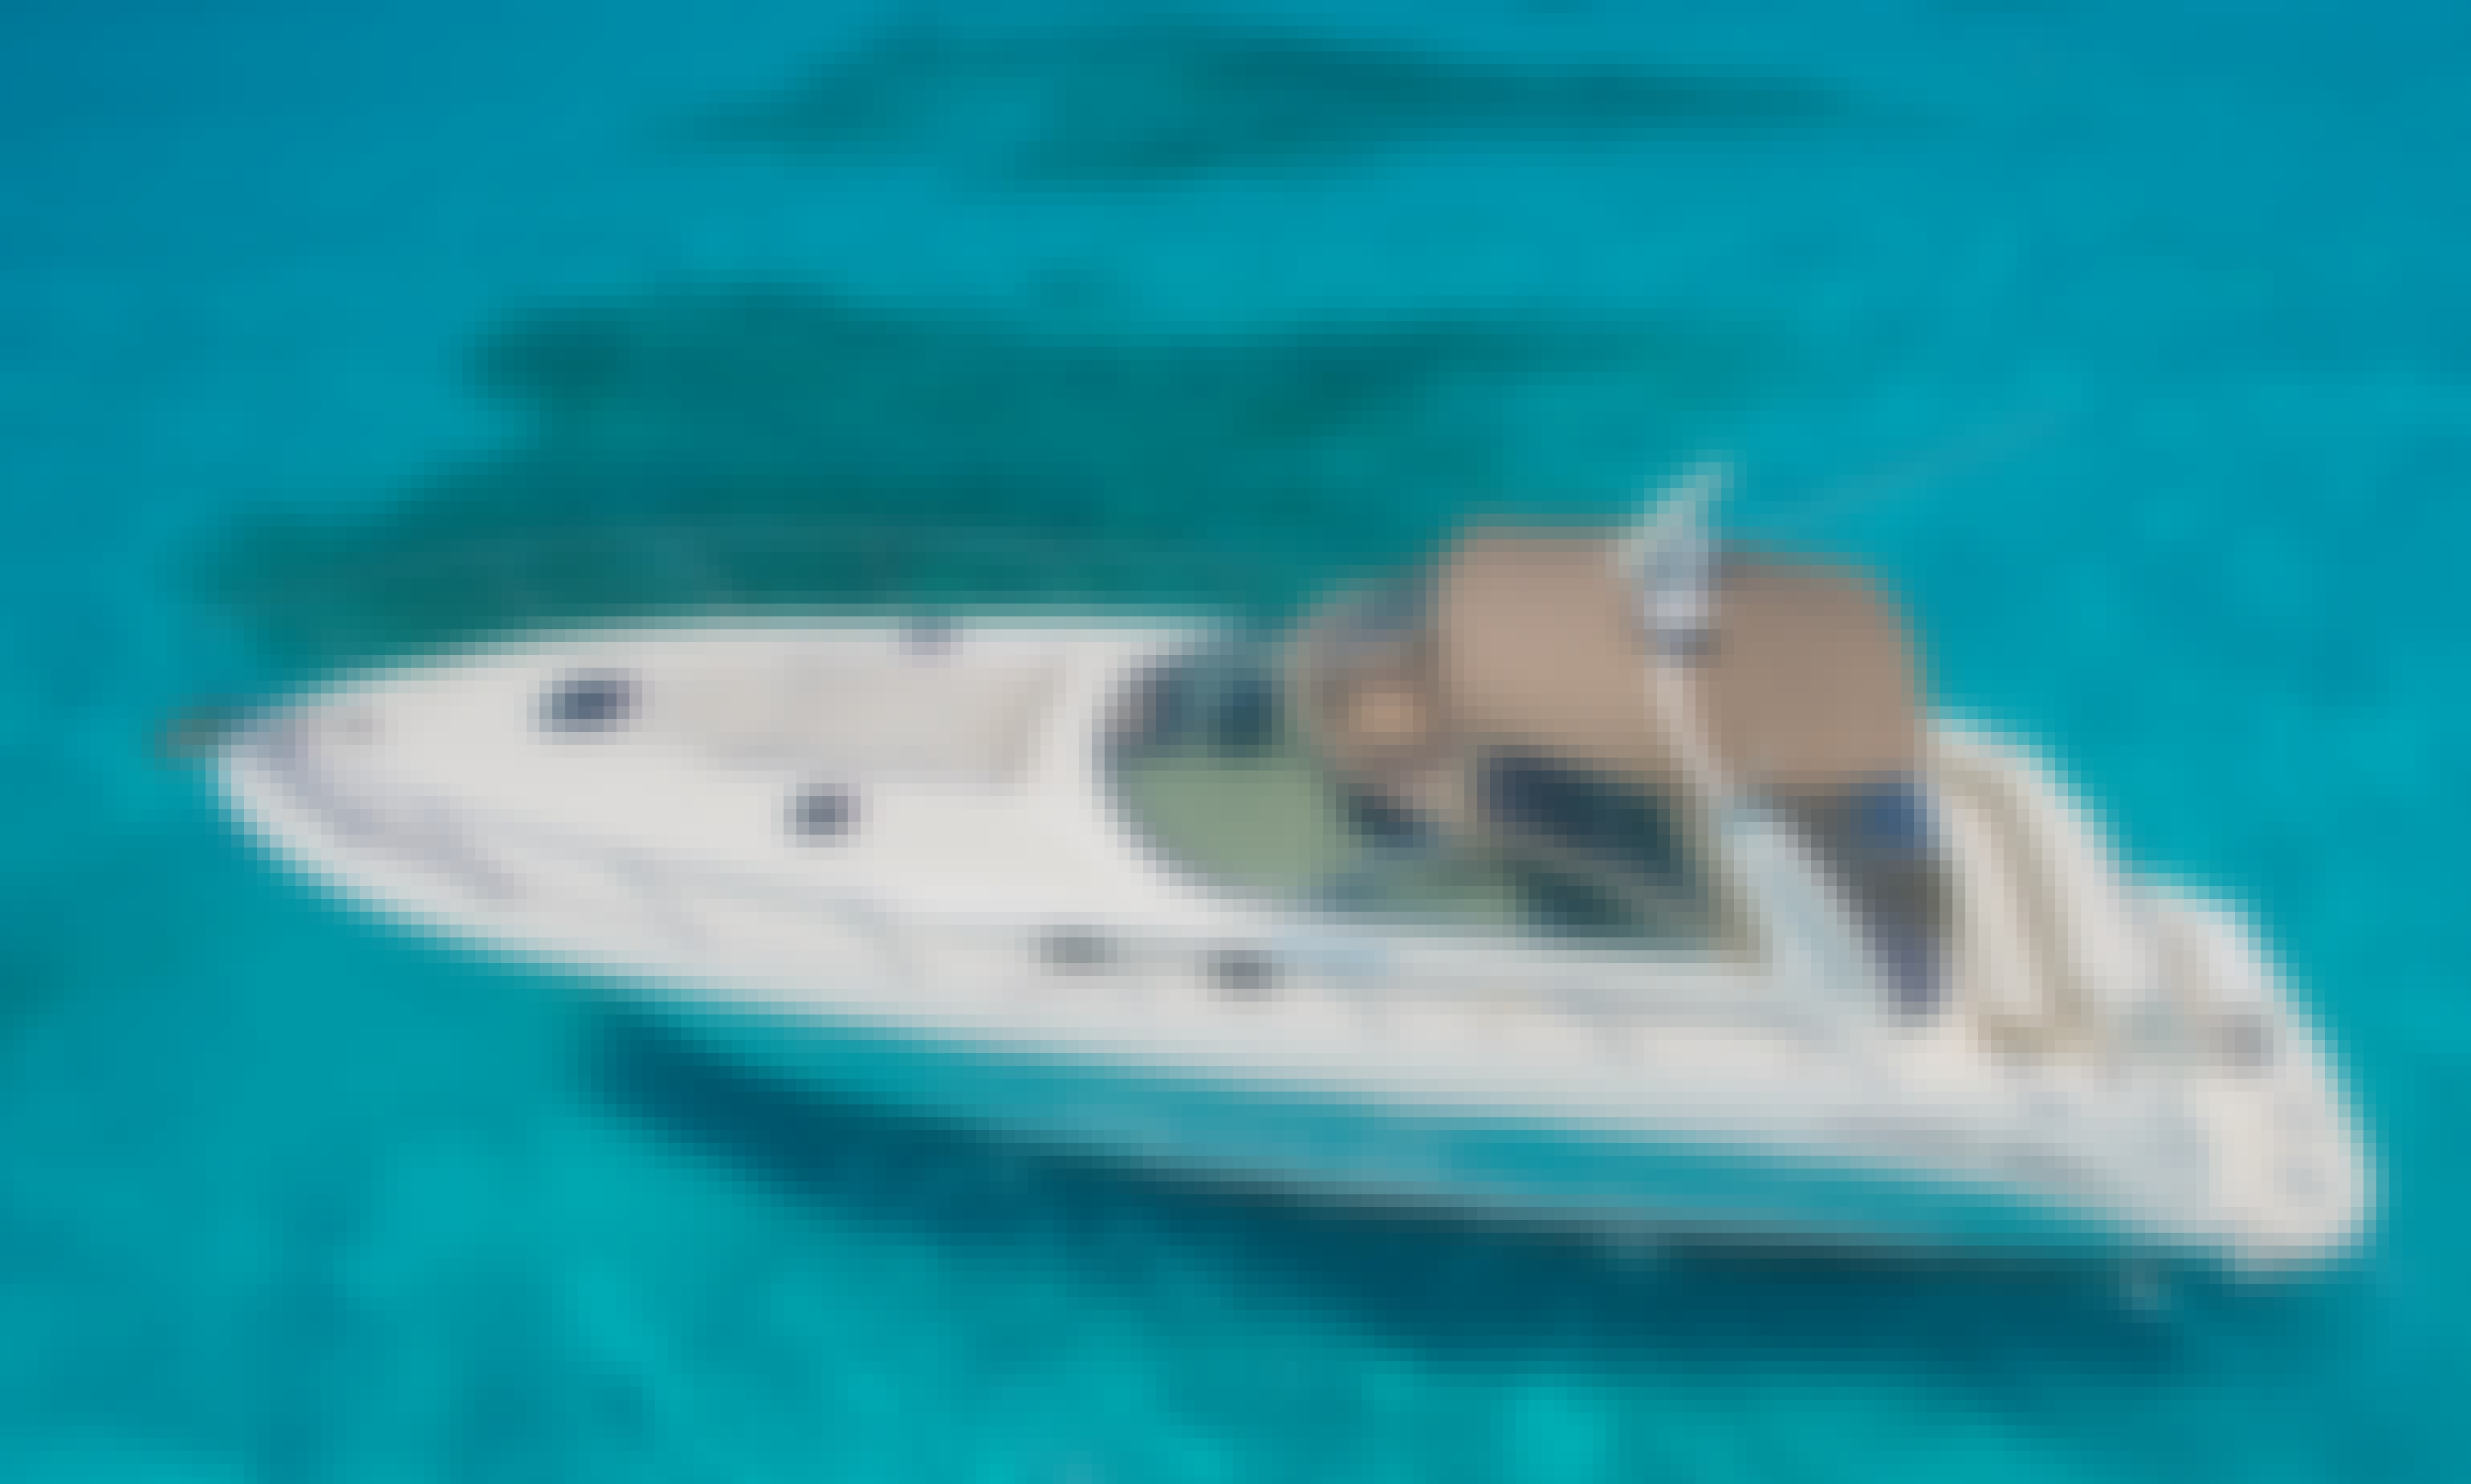 Luxury Private Yacht rental for groups,families up to 15 Pax